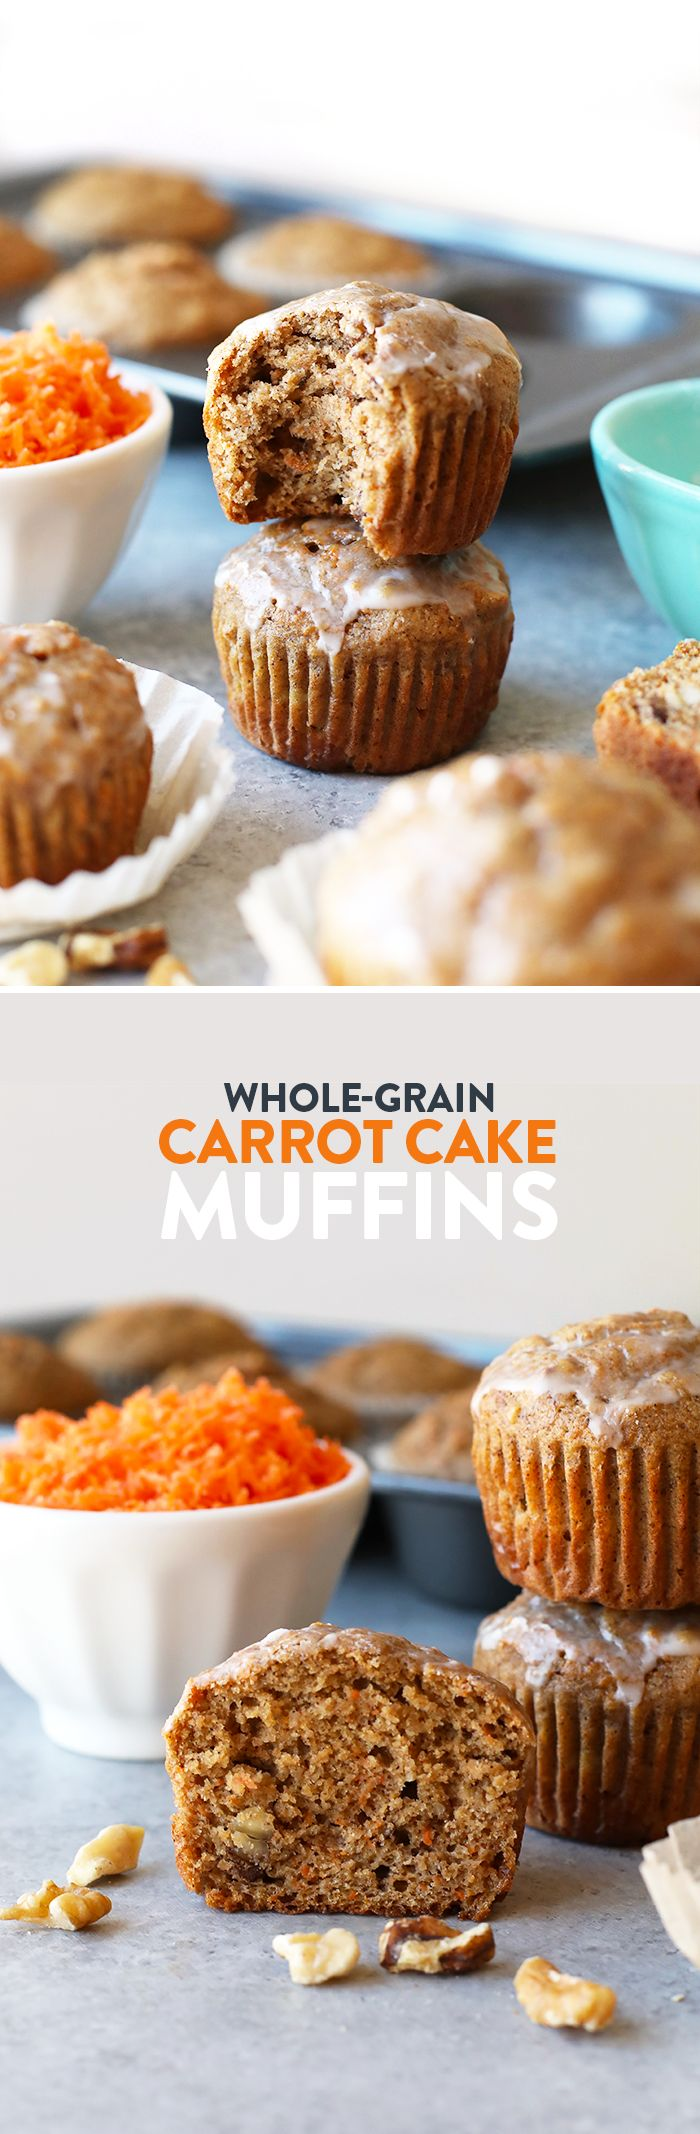 Take your muffin game up a notch with these easy whole grain carrot cake muffins. They're kid-friendly, naturally sweetened, and the perfect snack!